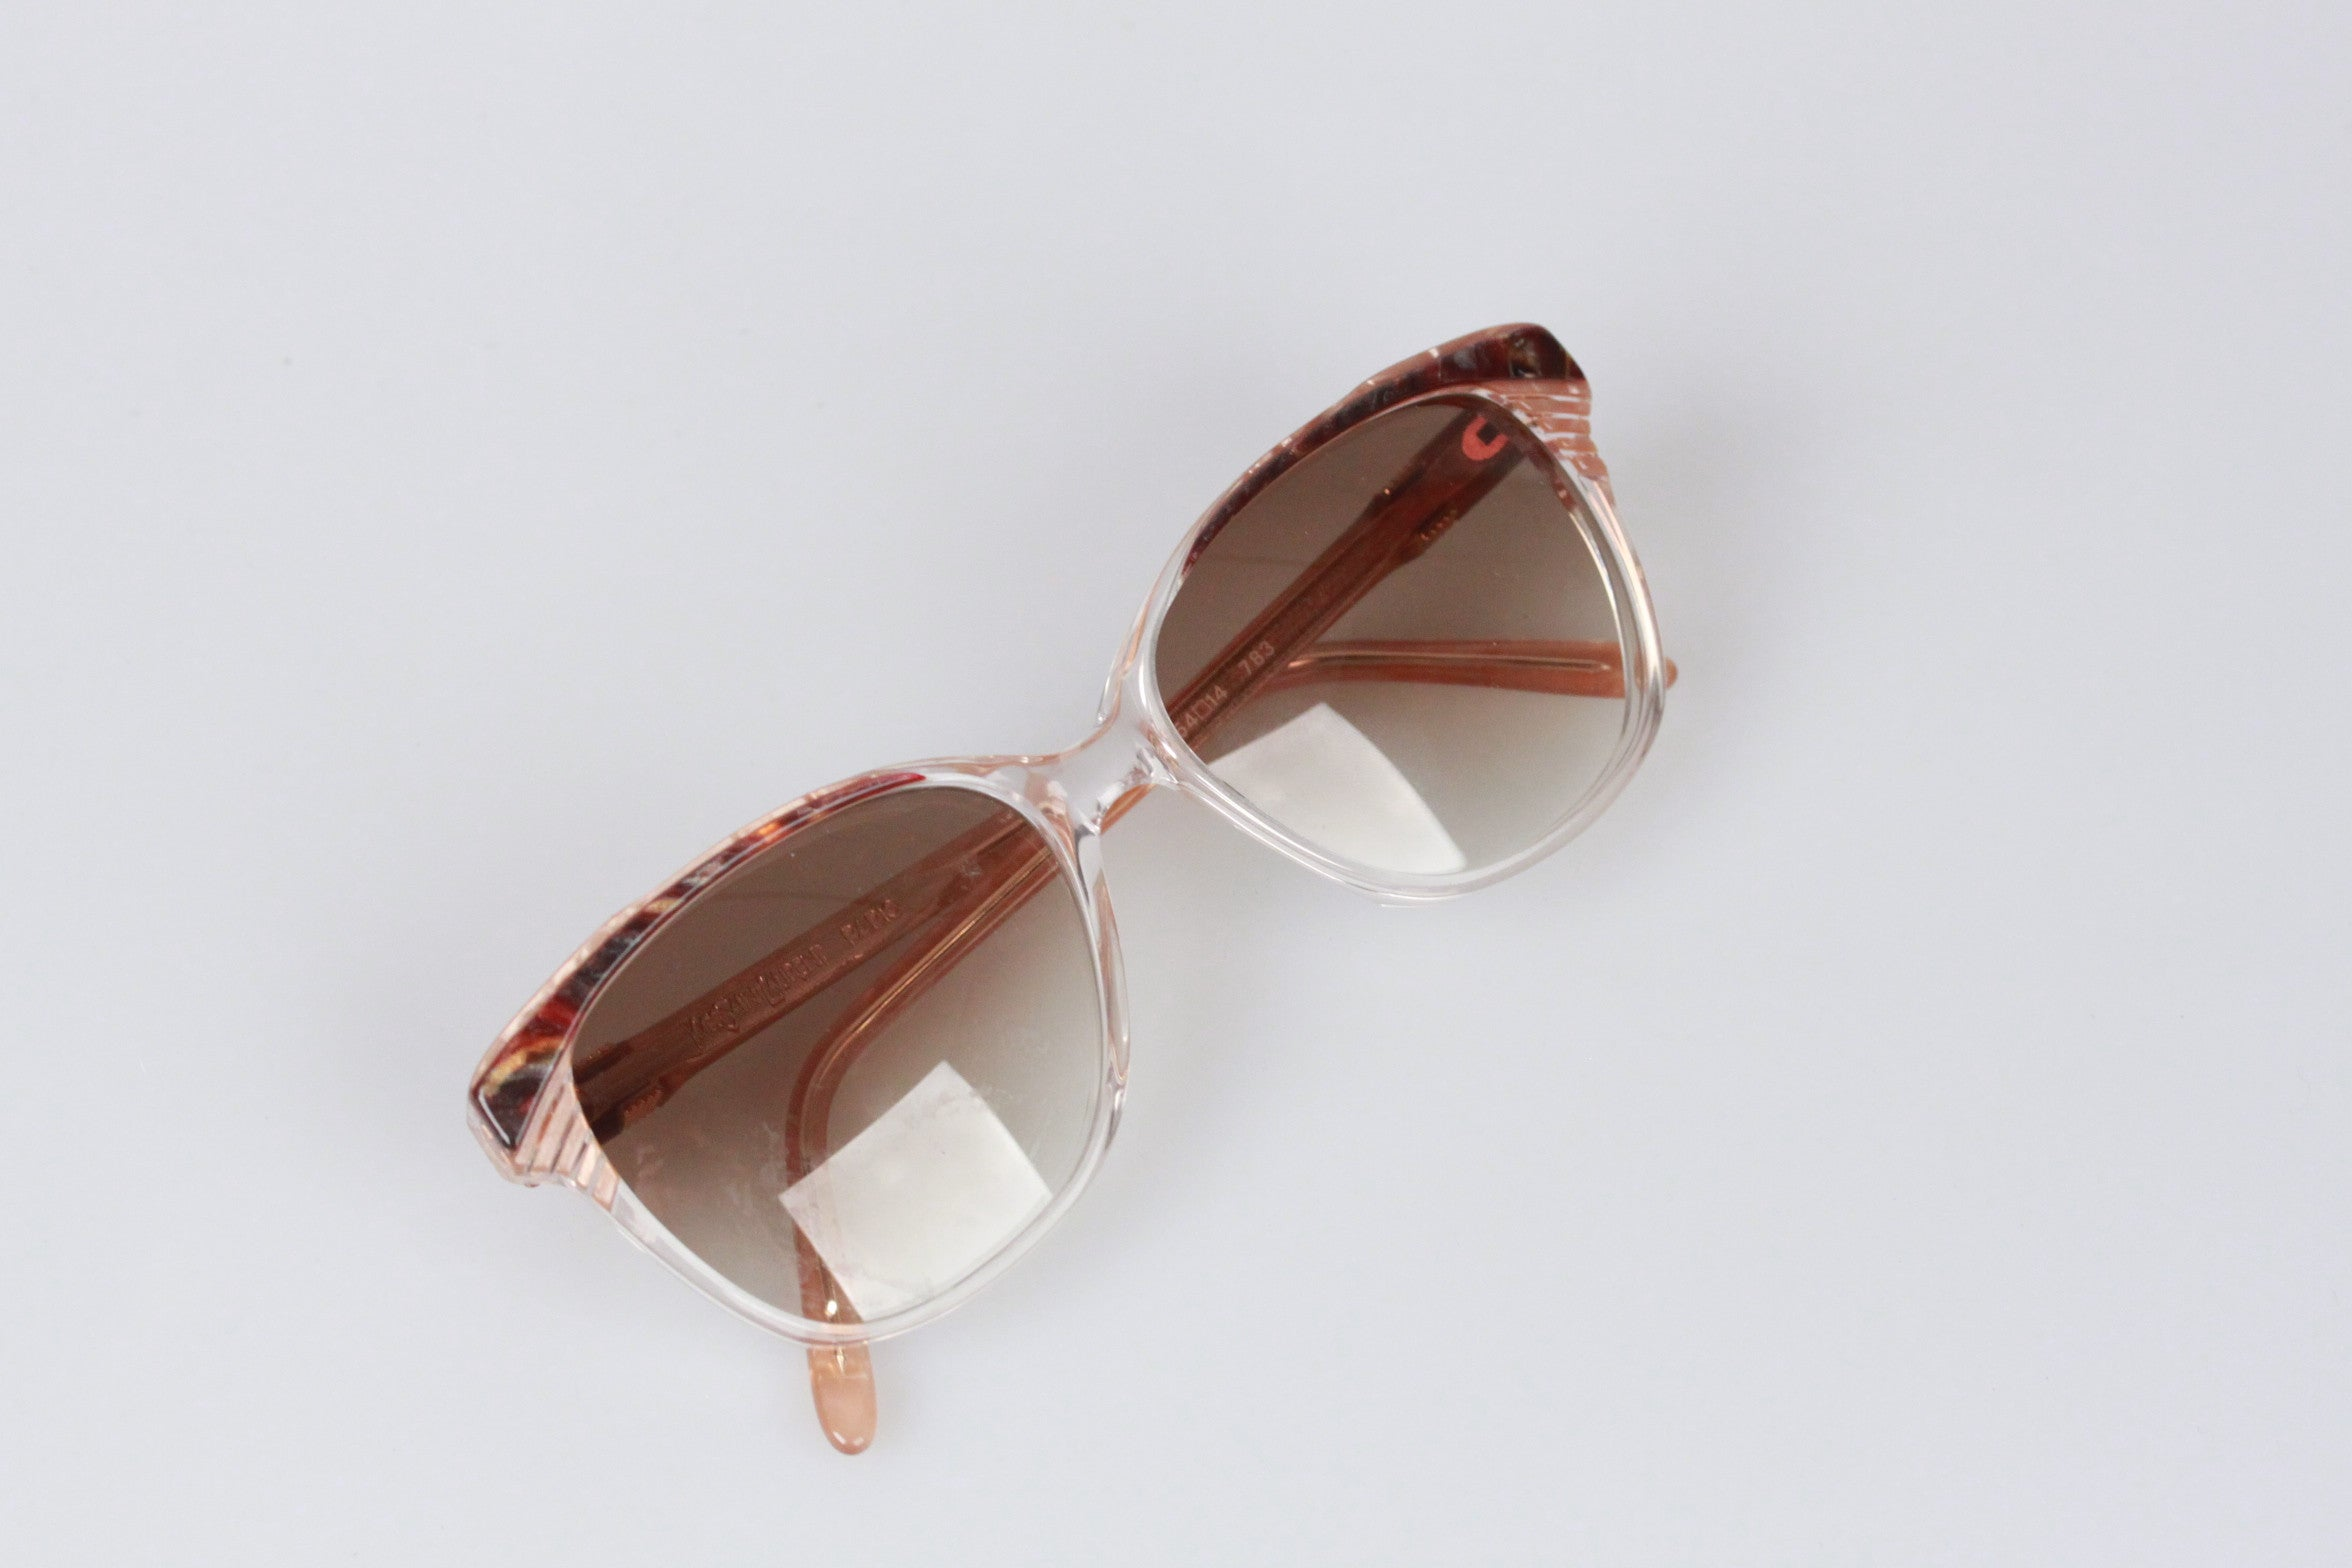 339f126e774 Yves Saint Laurent Vintage Sunglasses Sophocle 783 54mm Frame France For  Sale at 1stdibs